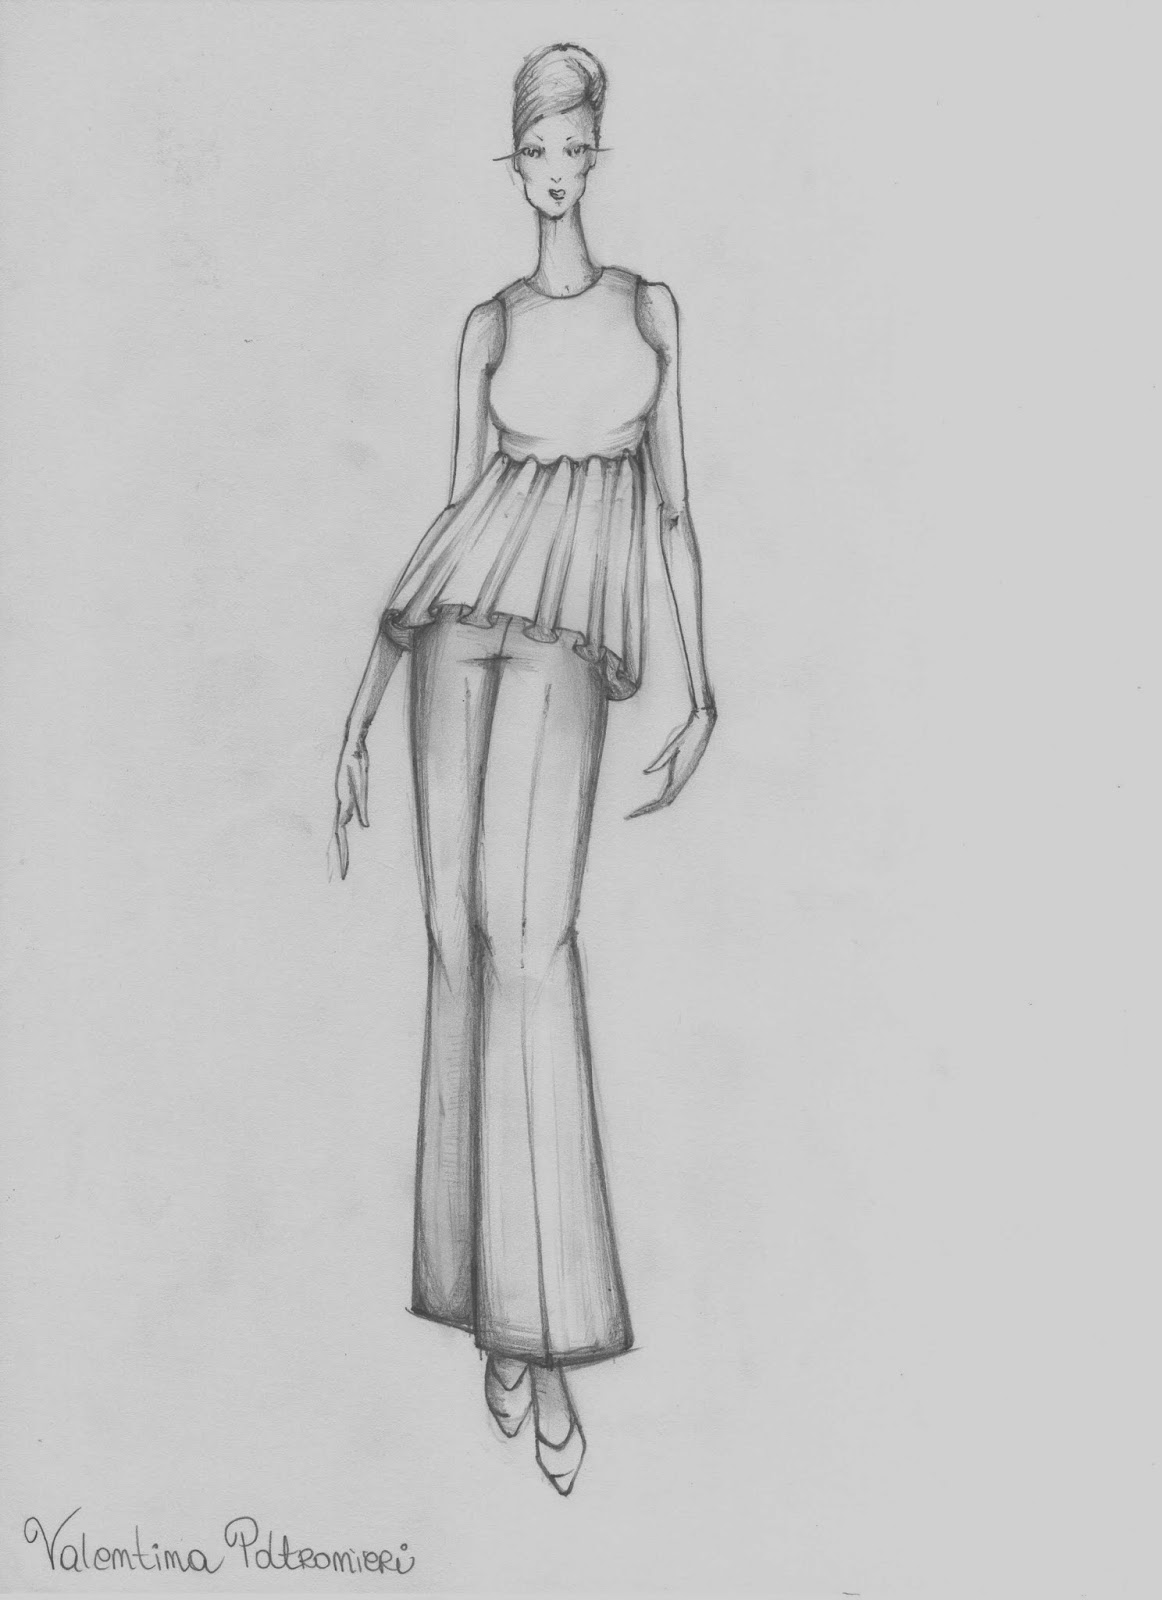 Favoloso Valentina Poltronieri Fashion Blog: DISEGNI DI MODA LK87